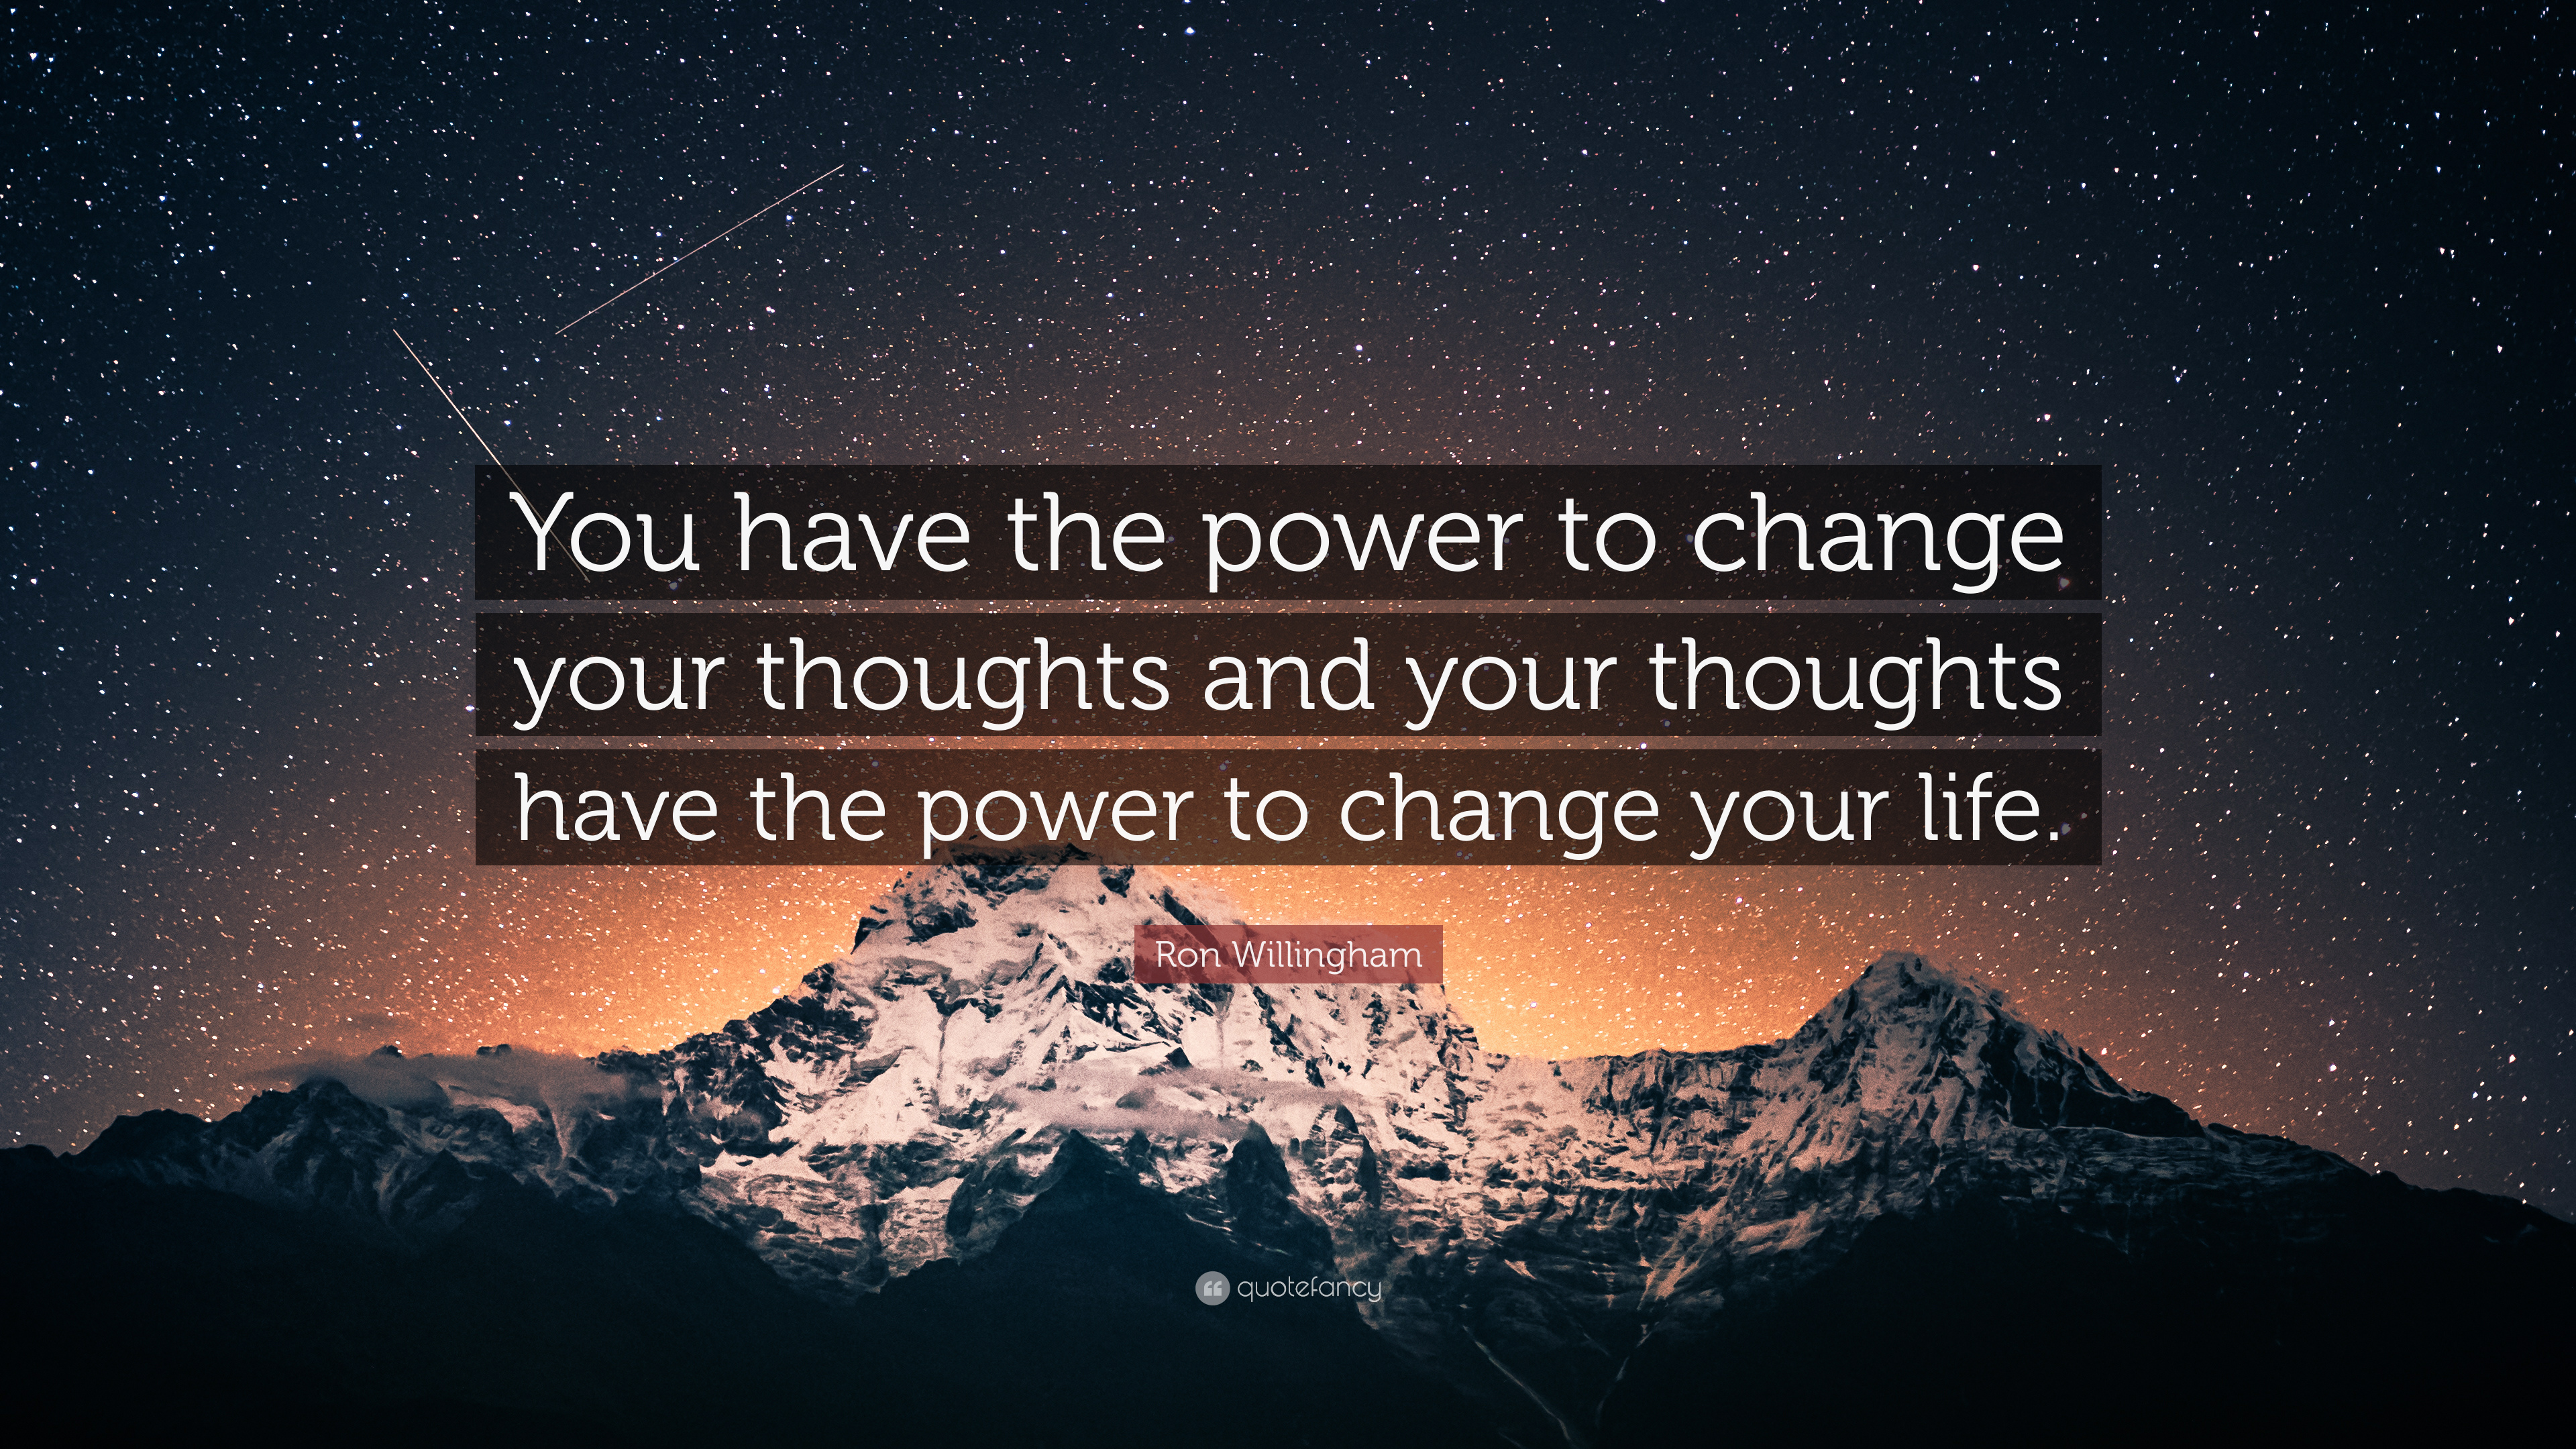 2426887-Ron-Willingham-Quote-You-have-the-power-to-change-your-thoughts.jpg